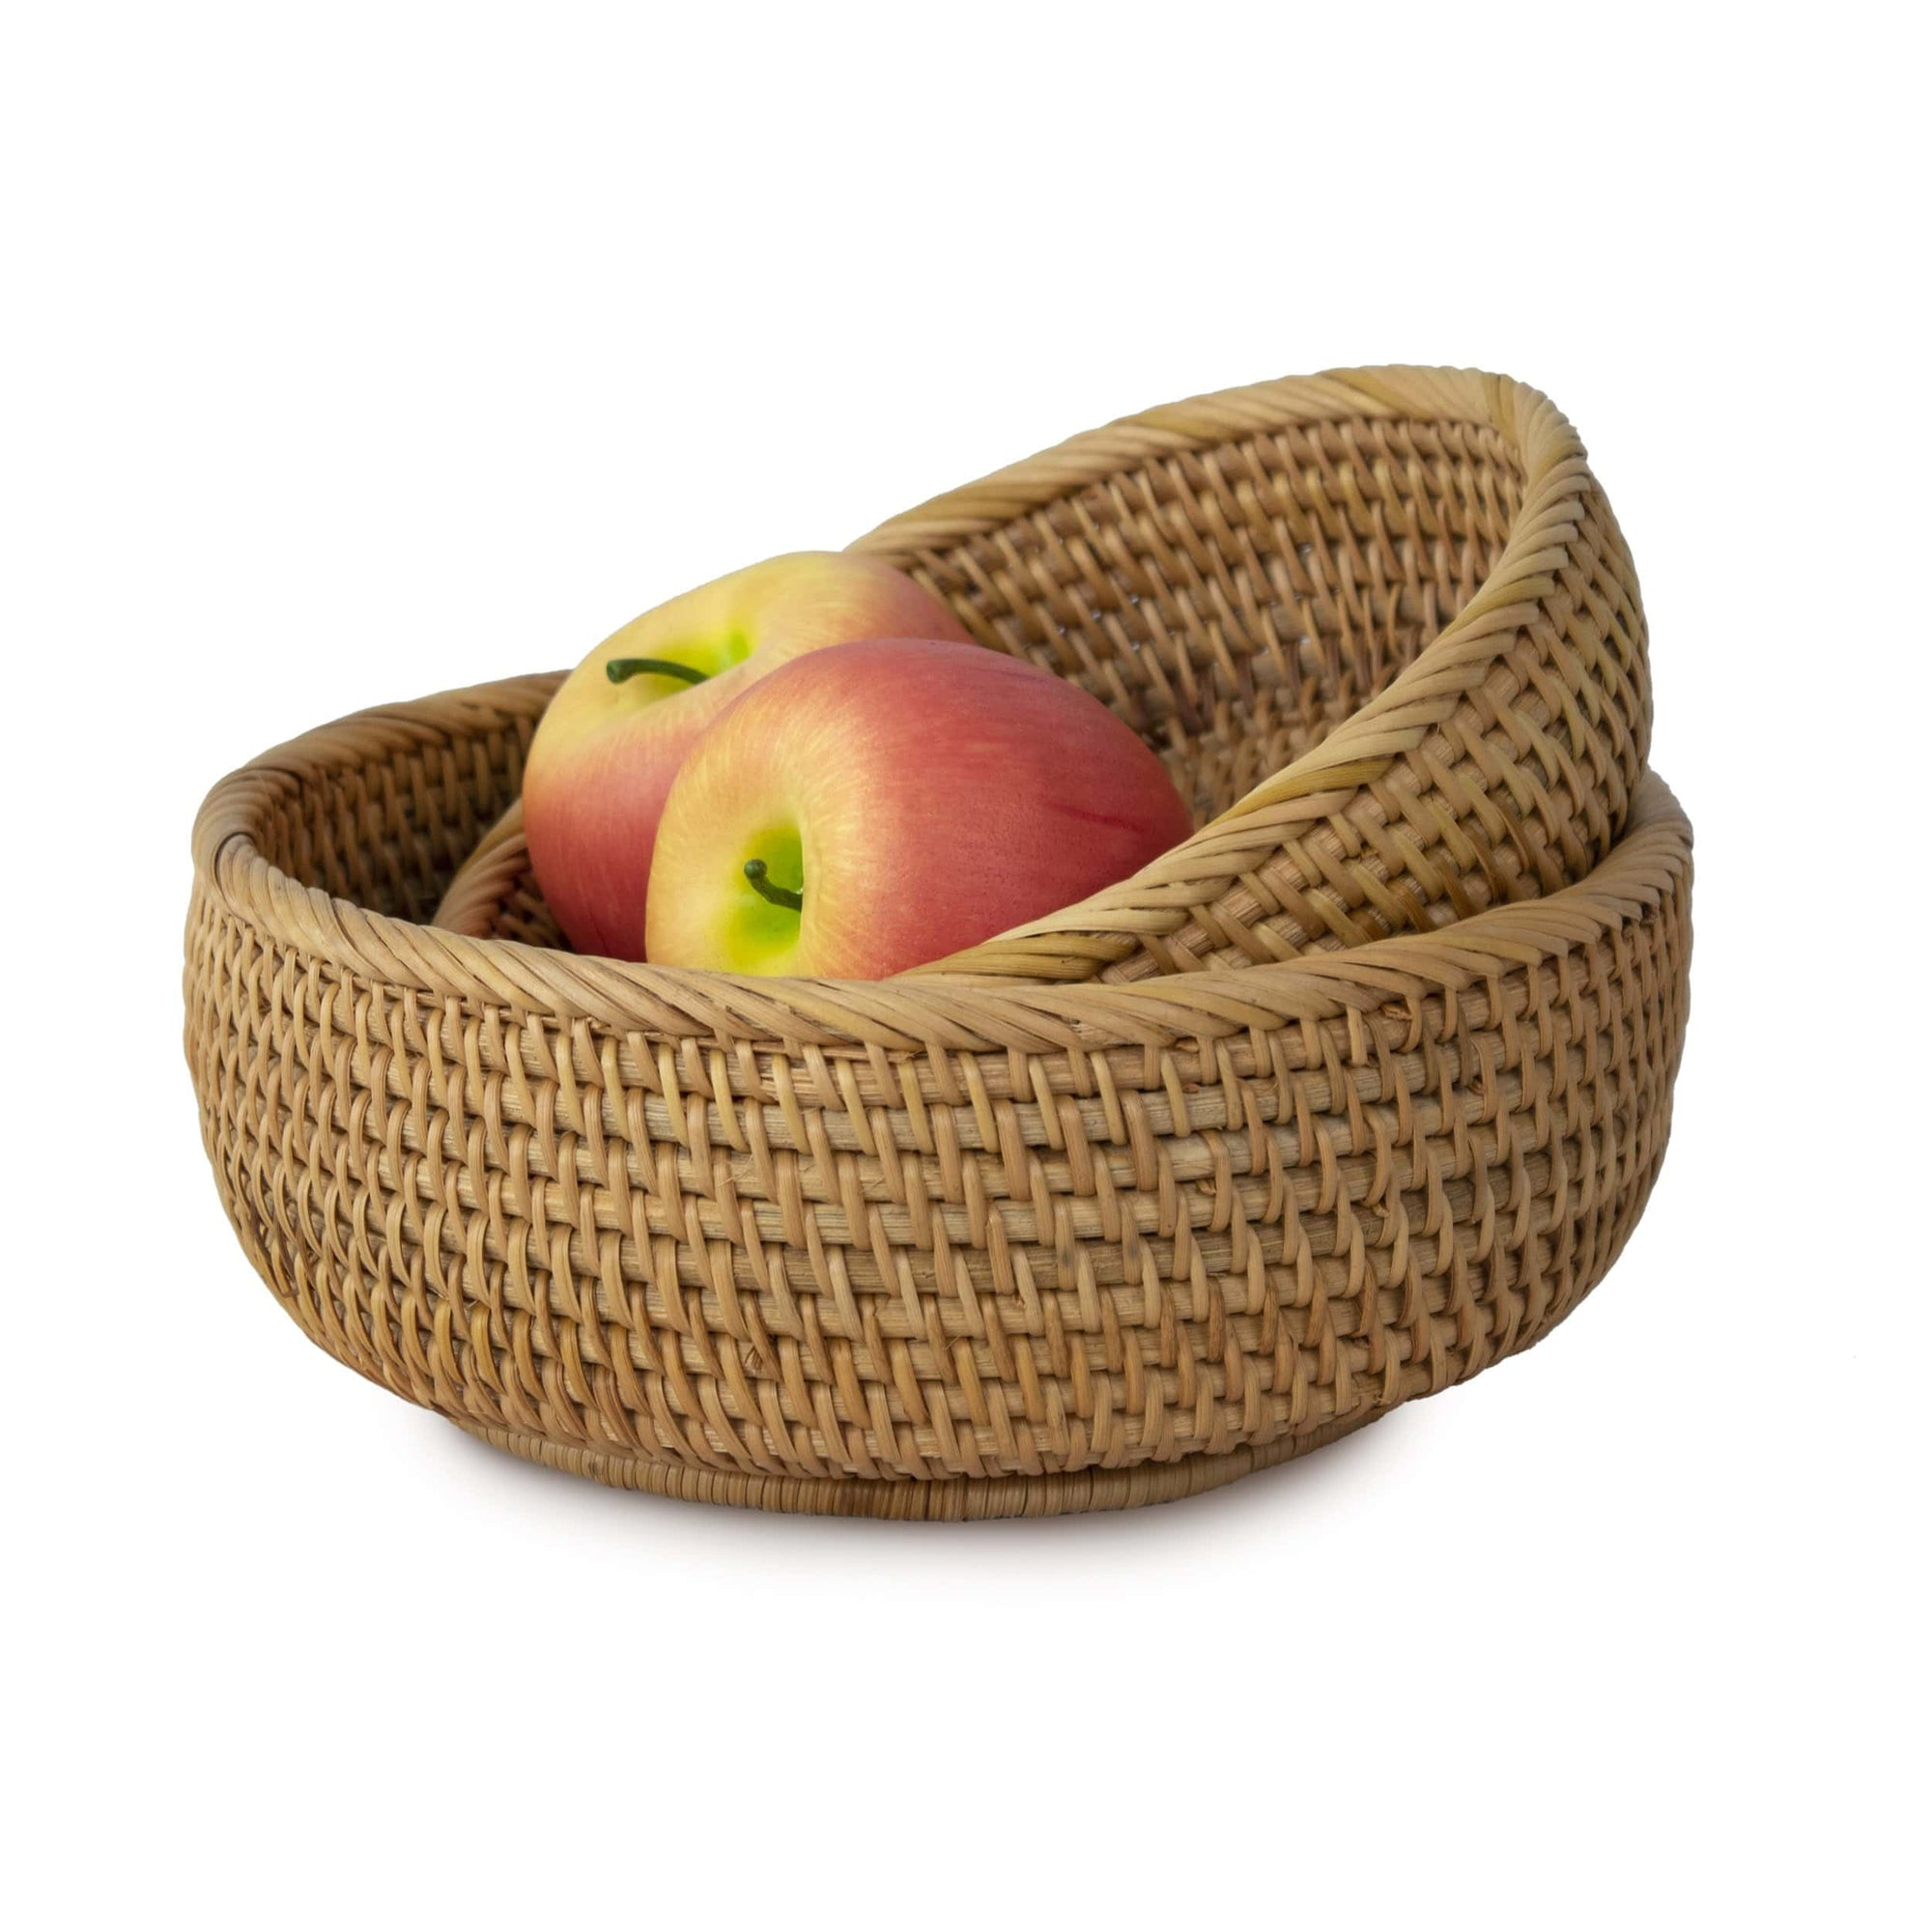 Bowl Shaped Wicker Basket Set Tabletop Serving Bowls For Home And Re Made Terra